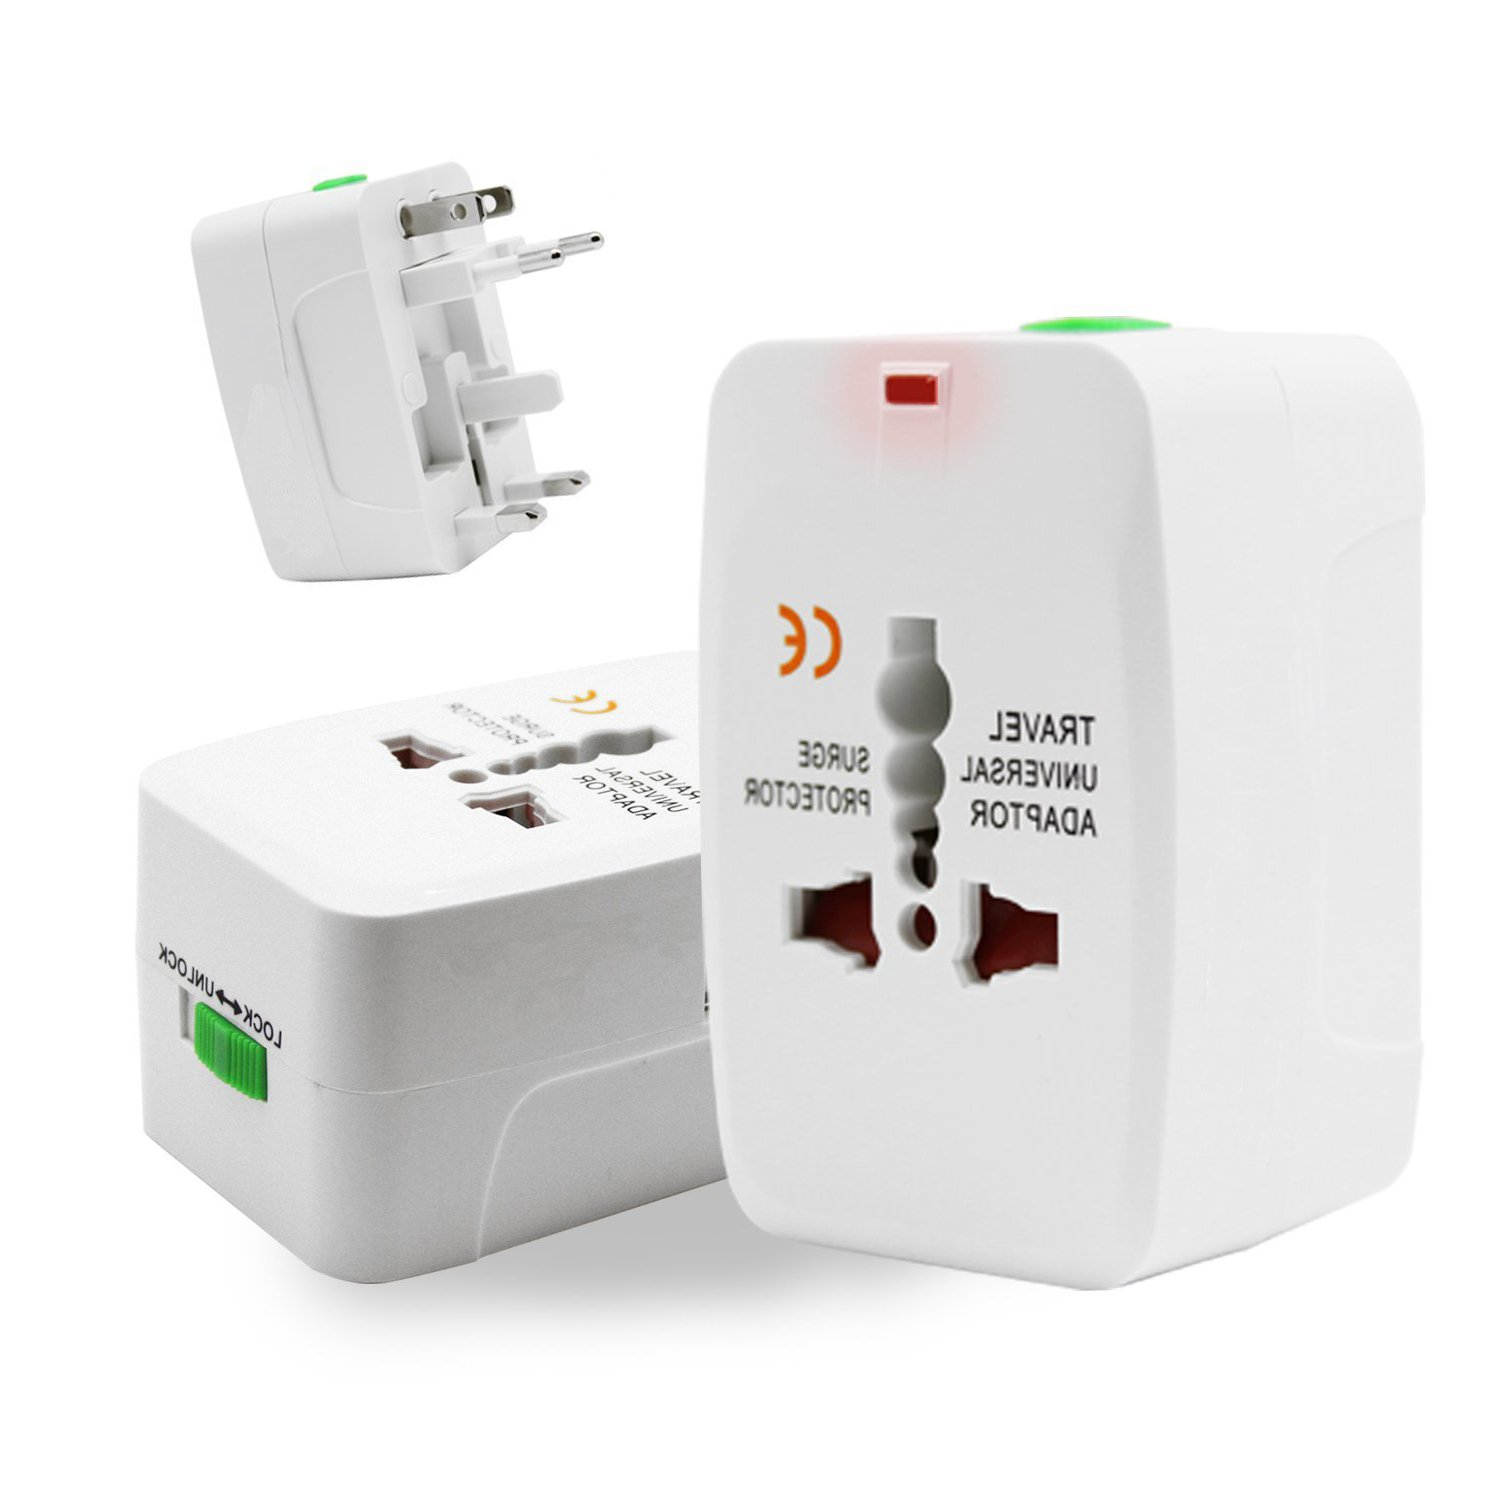 UK AUS to USA Travel Adapter Converter Two USB Port Universal Worldwide All in One Wall Adapter Converter Plug Surge Protector International Travel Power Adapter AC Power Europe EU